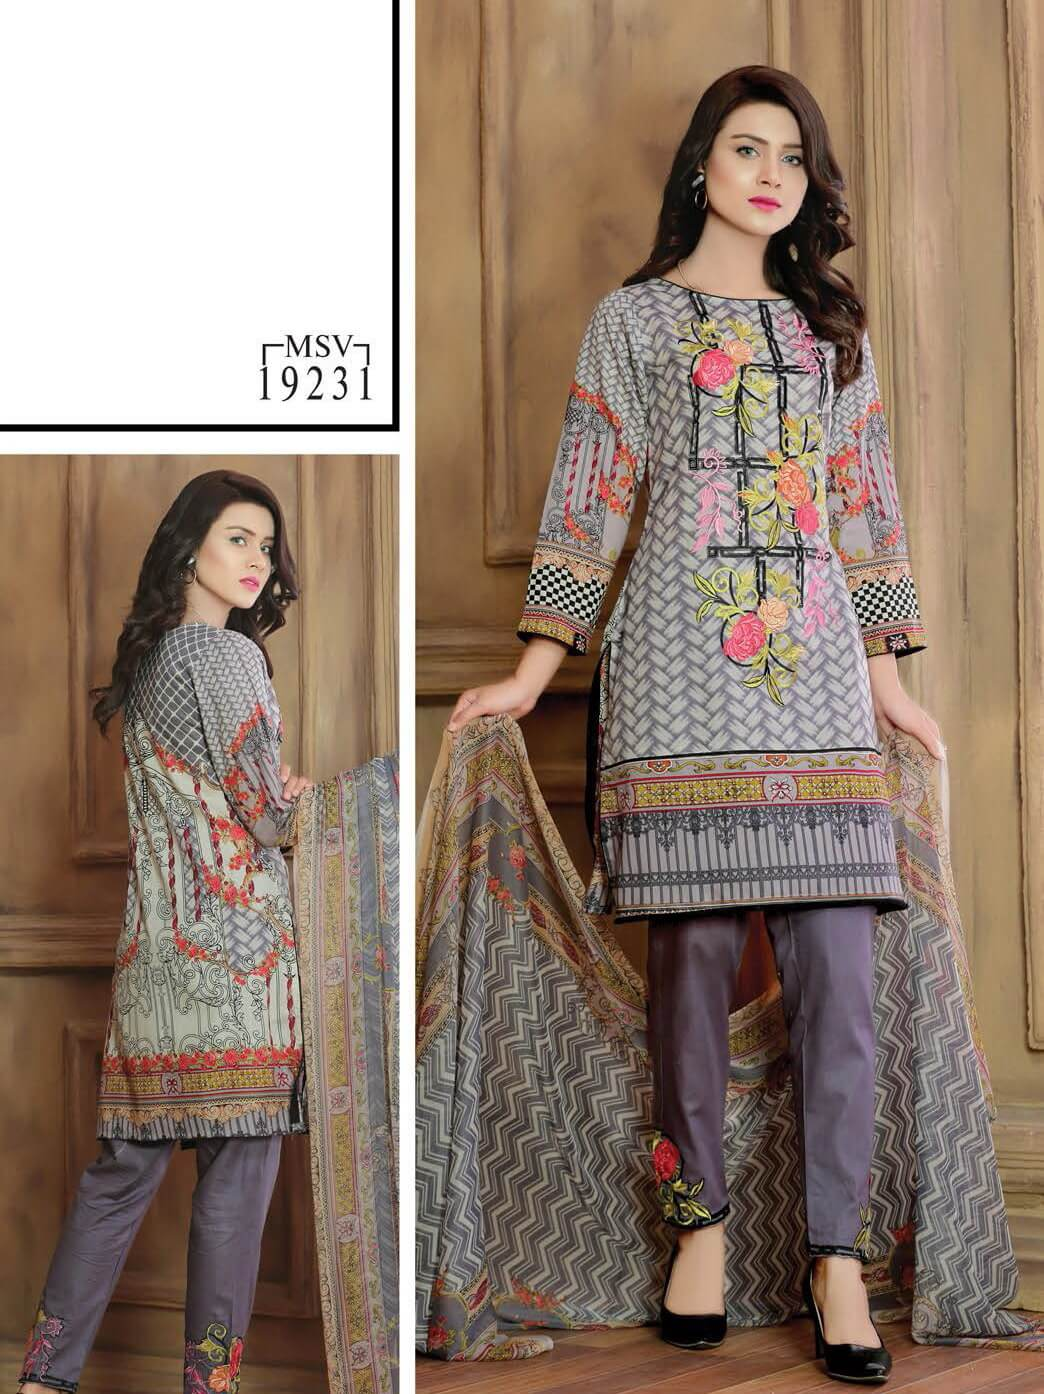 Aroosa Embroidered Lawn Summer 2019 Unstitched 3 Piece Suit MSV 19231 - FaisalFabrics.pk